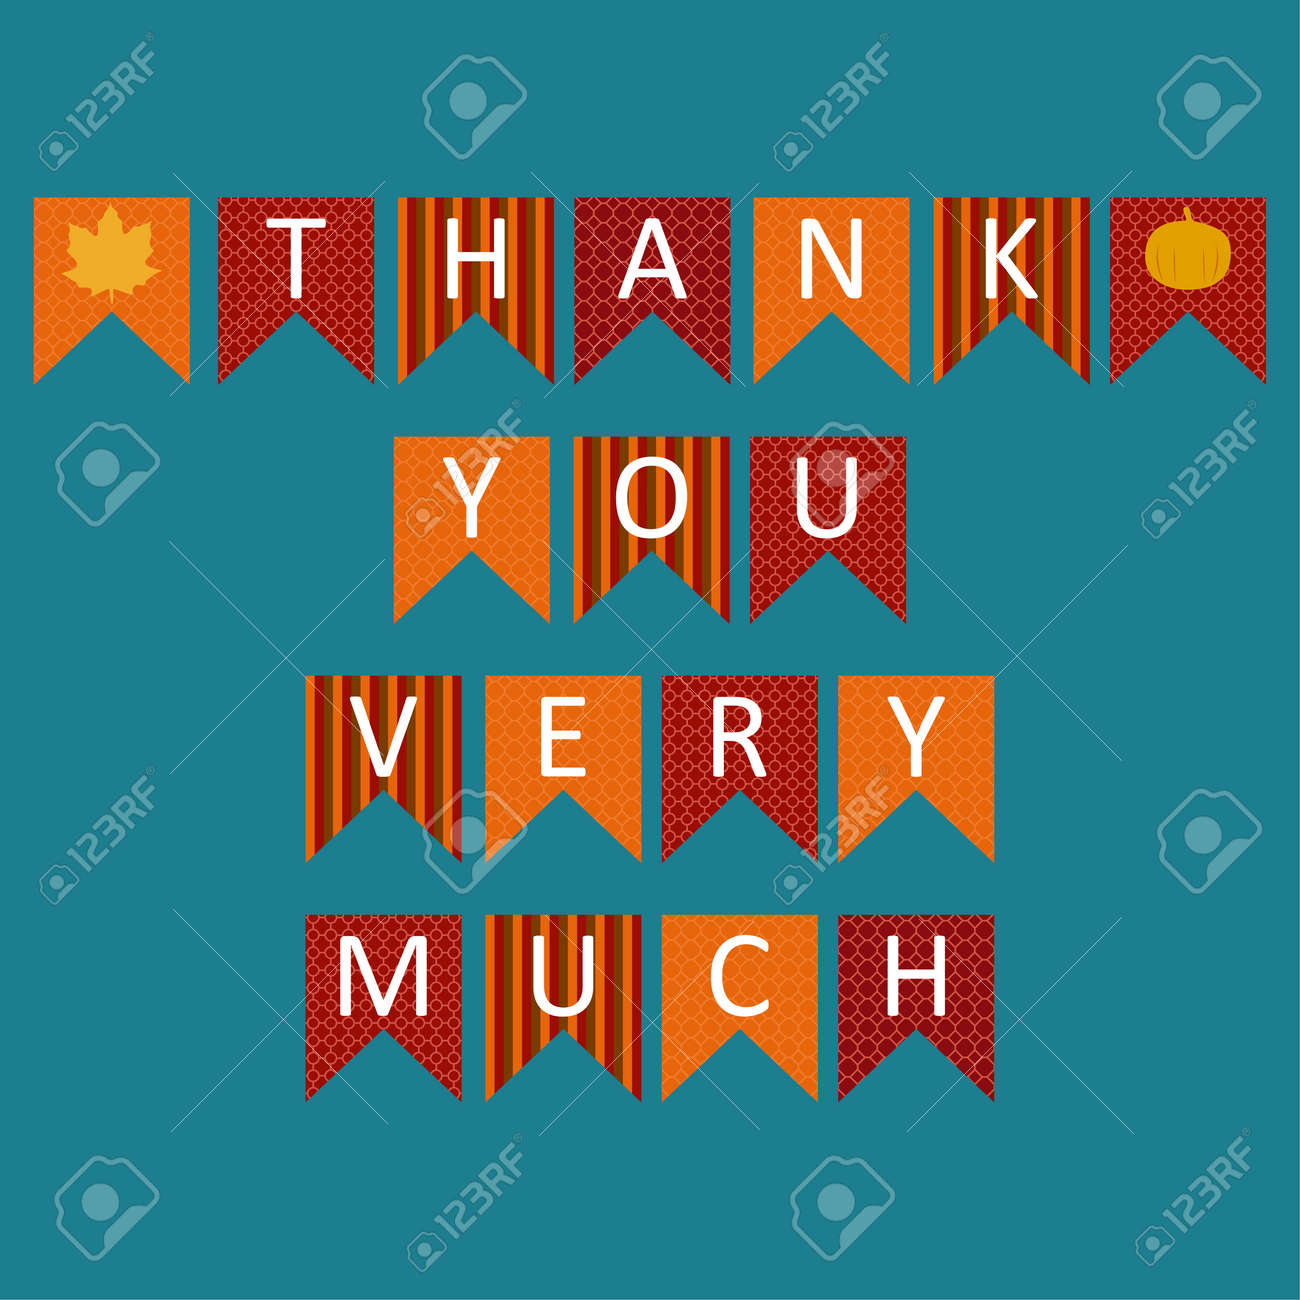 Thank you very much sign text in triangle colorful Icon. Celebration quotation for card vector illustration. Modern design poster with leaves and pumpkin. For shop, web, business, flyers, and post. - 111124558